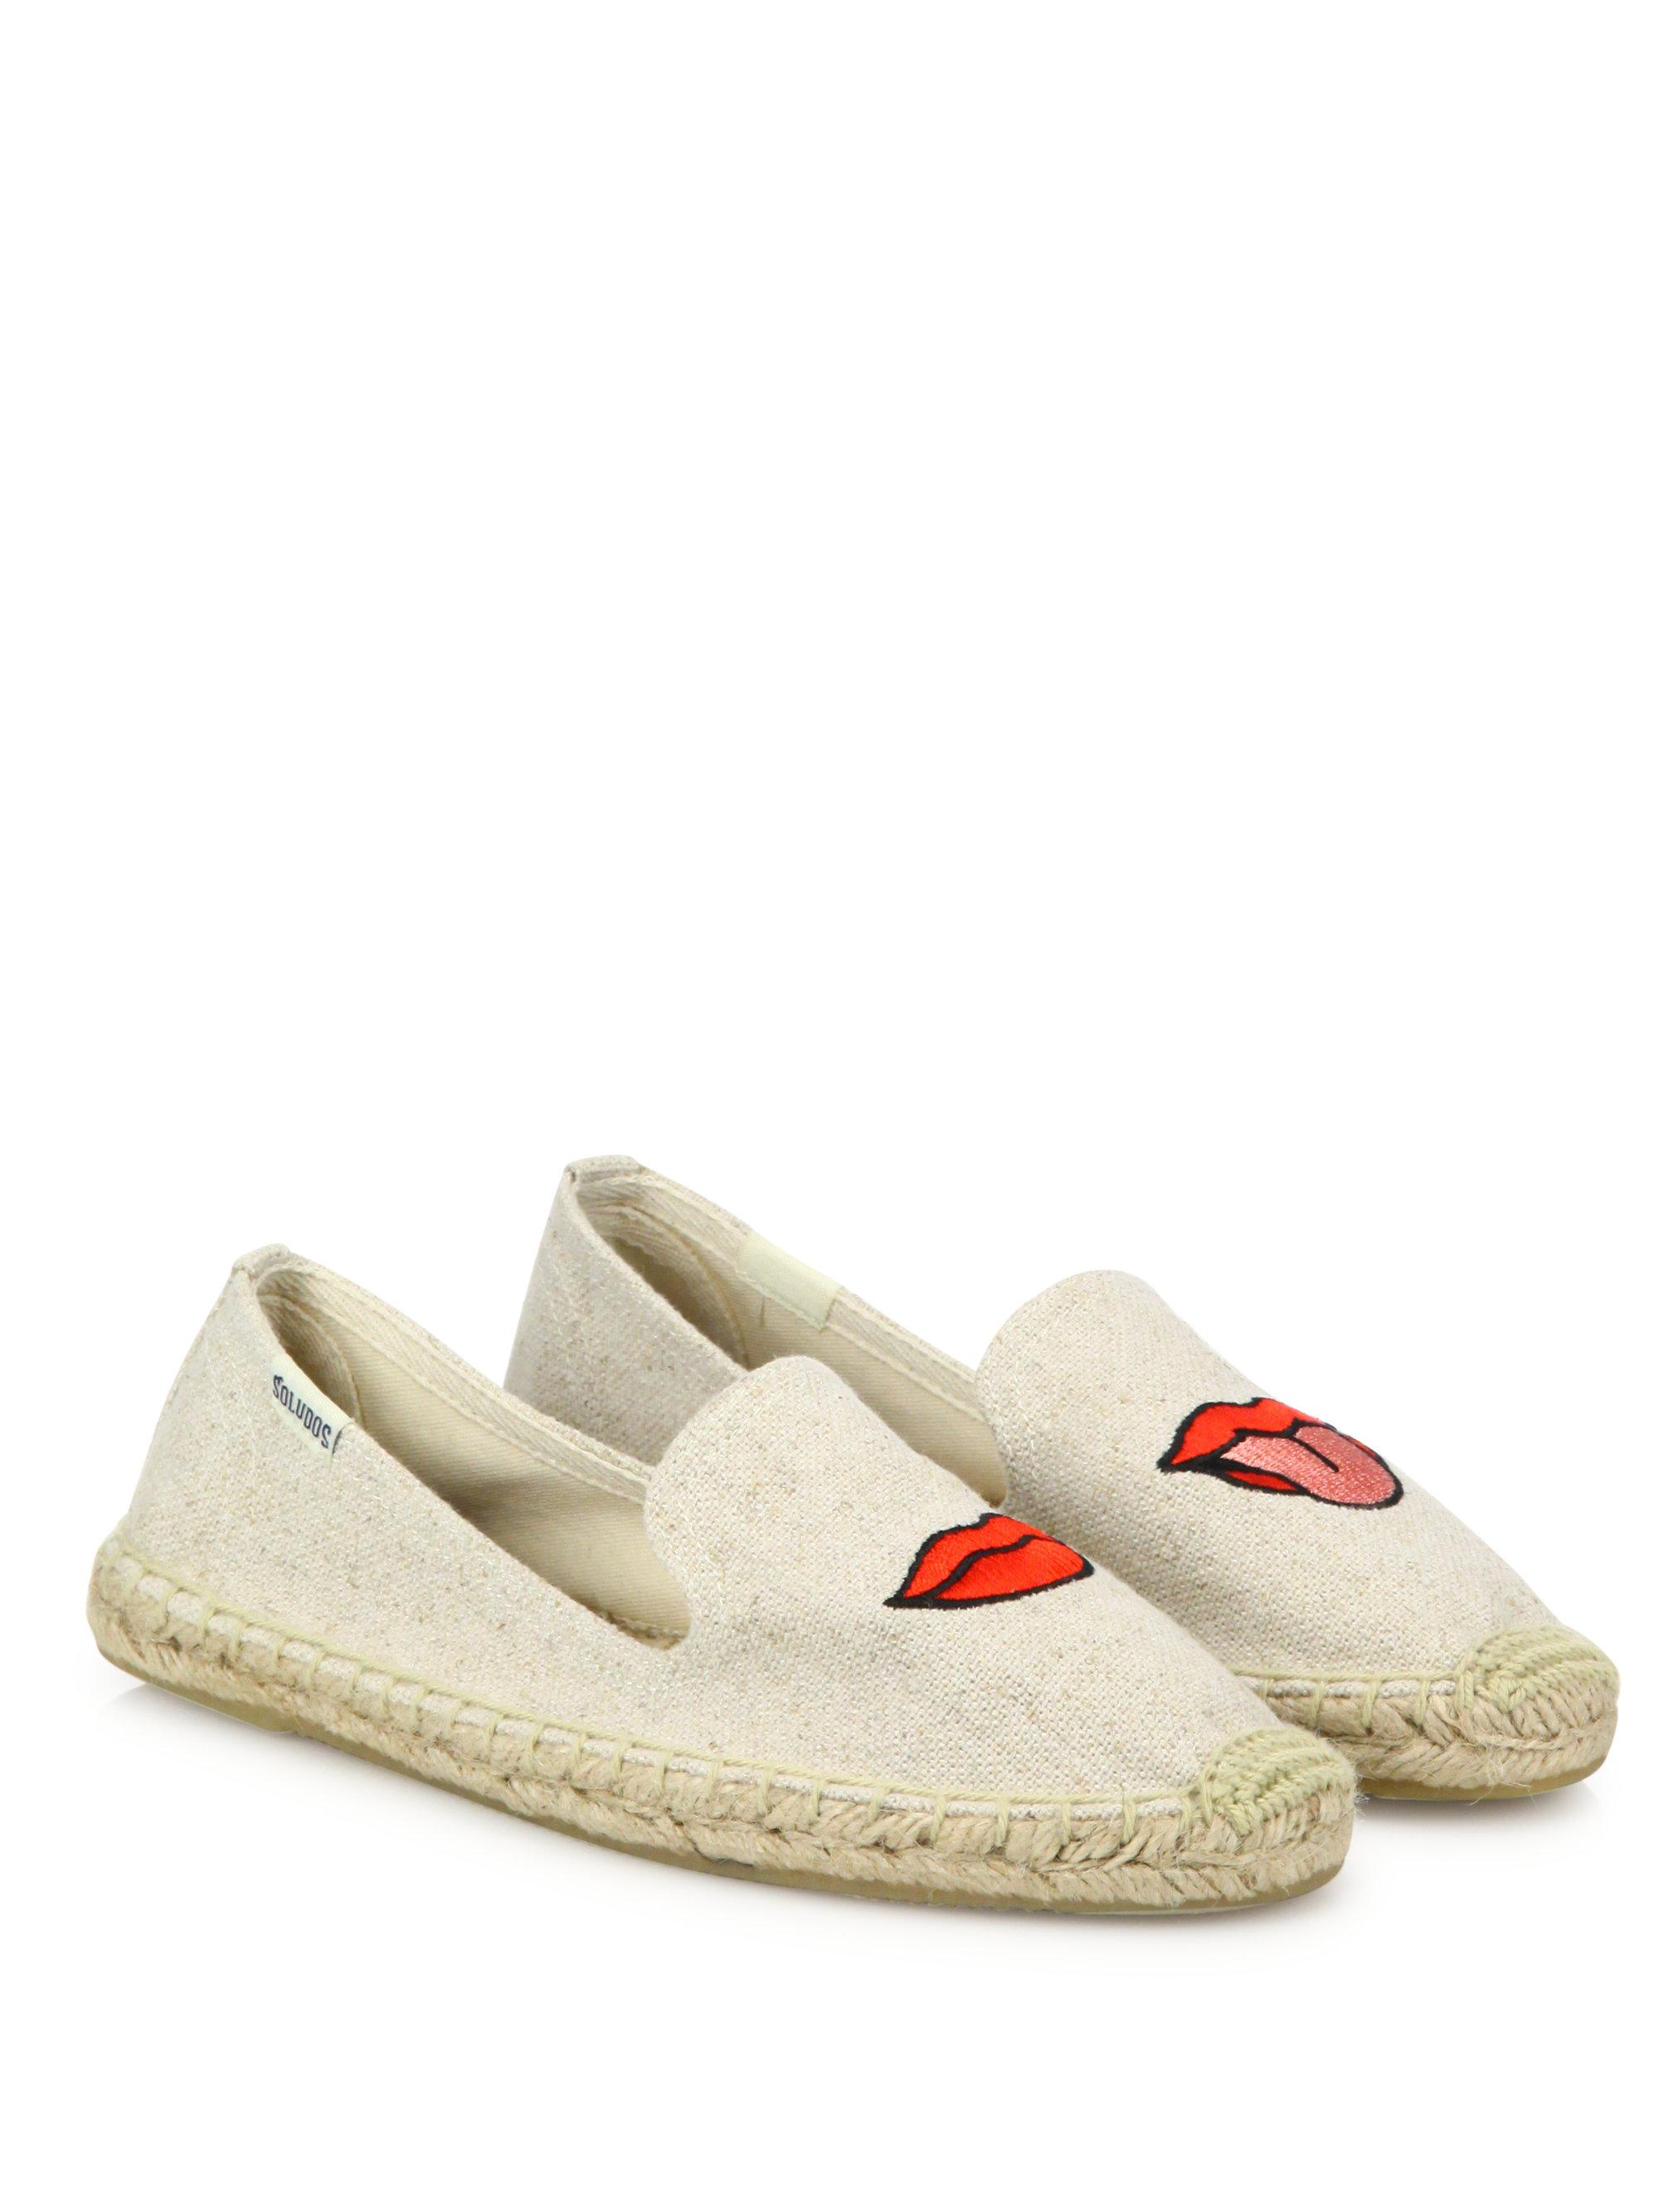 Soludos Canvas Espadrille Flats 2014 newest sale online 100% authentic cheap price outlet professional sneakernews cheap price clearance websites Cnw51xZODs